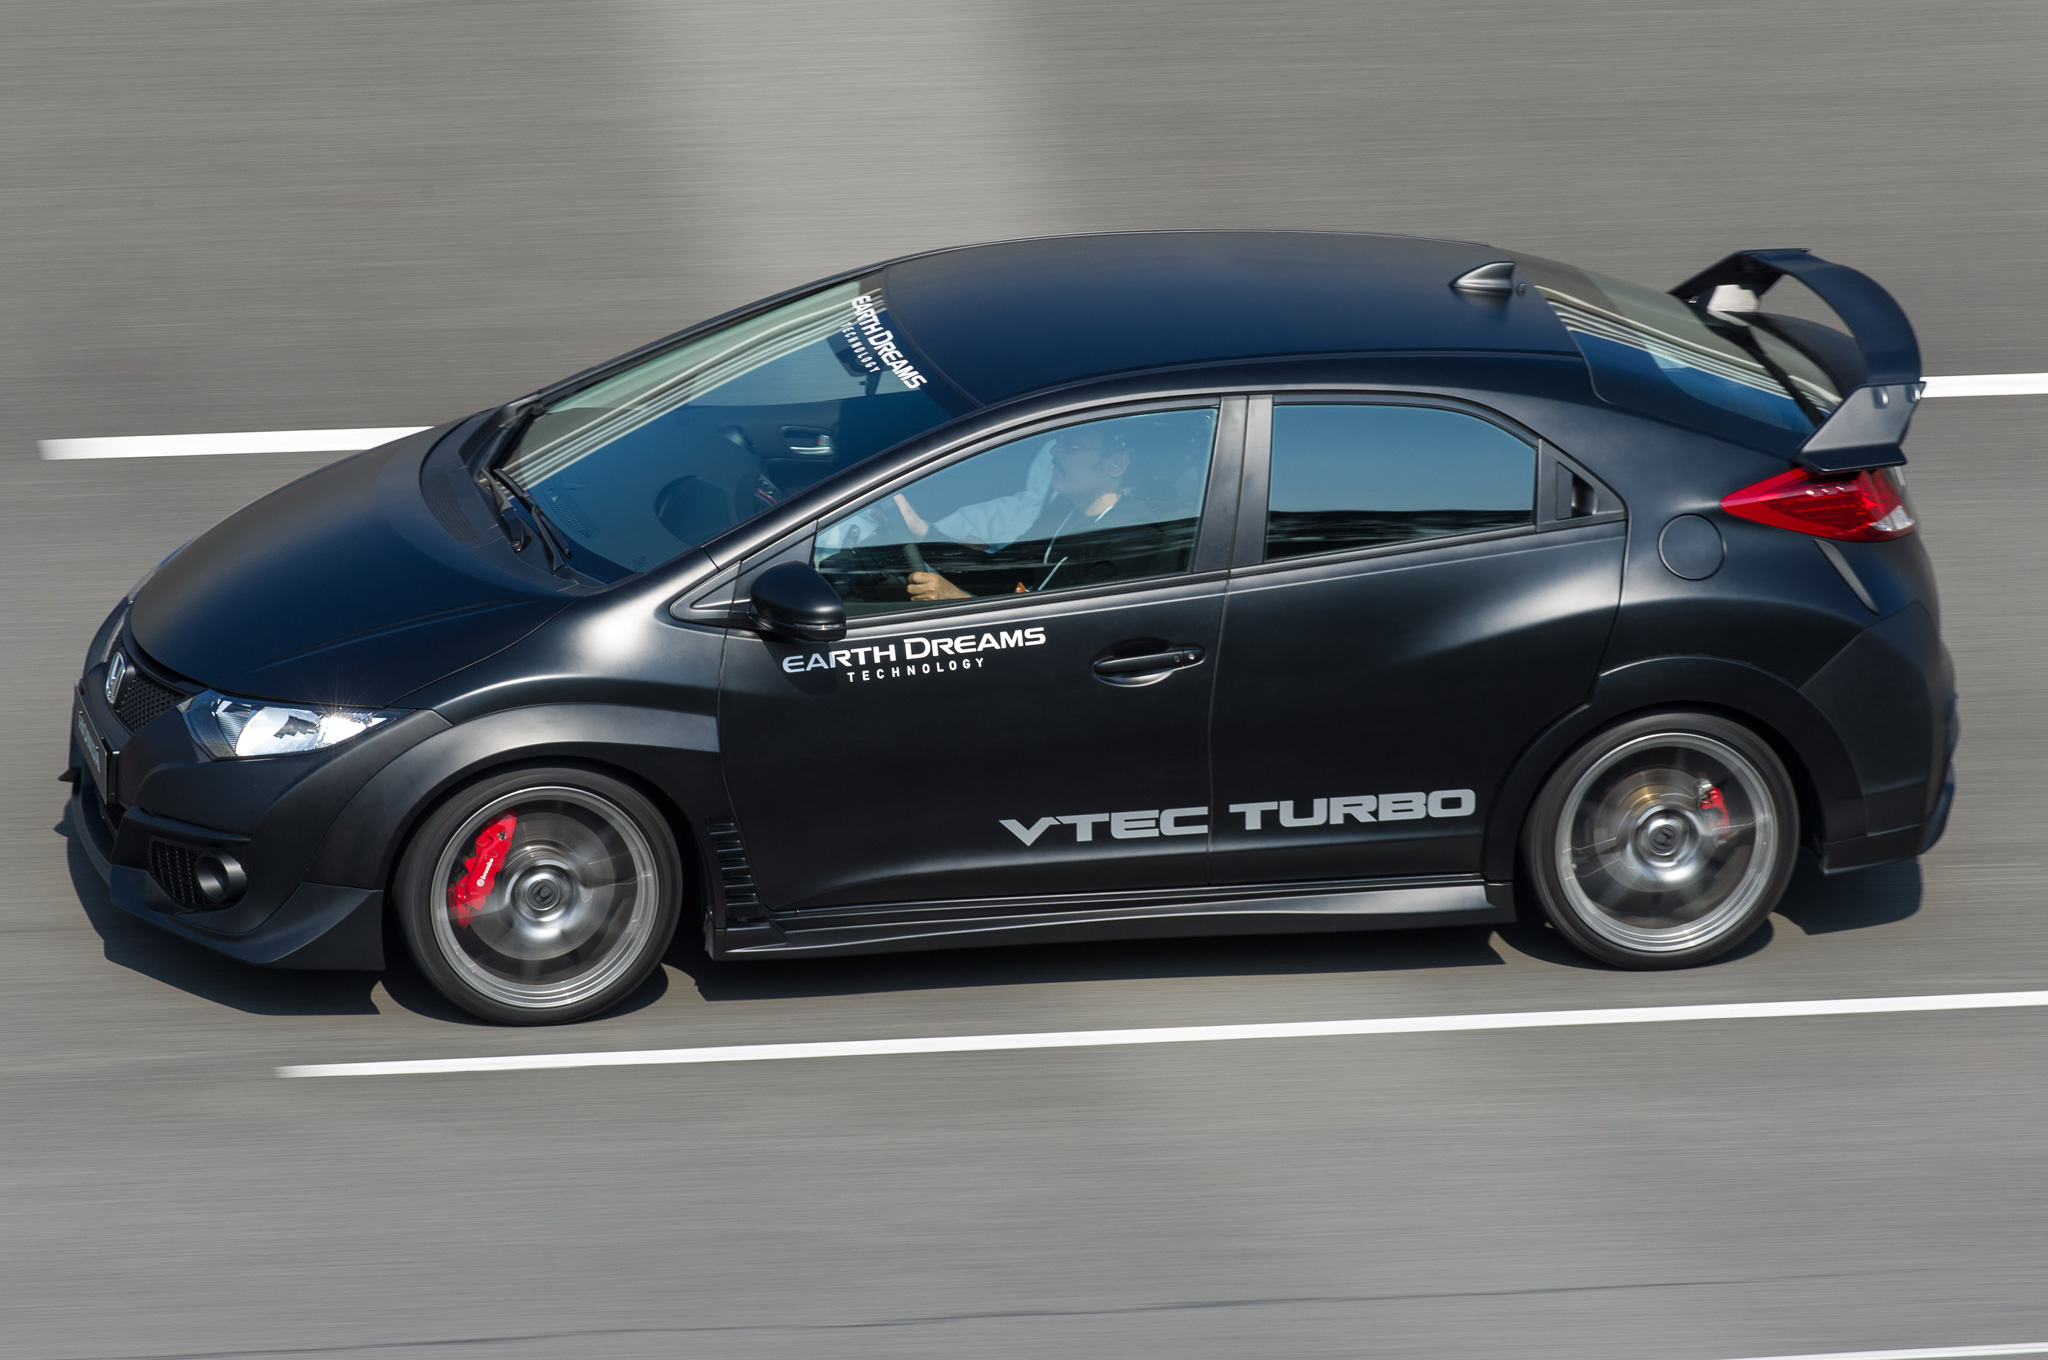 Honda Introduces 280-HP Turbo 2 0L I-4 Engine in Civic Type